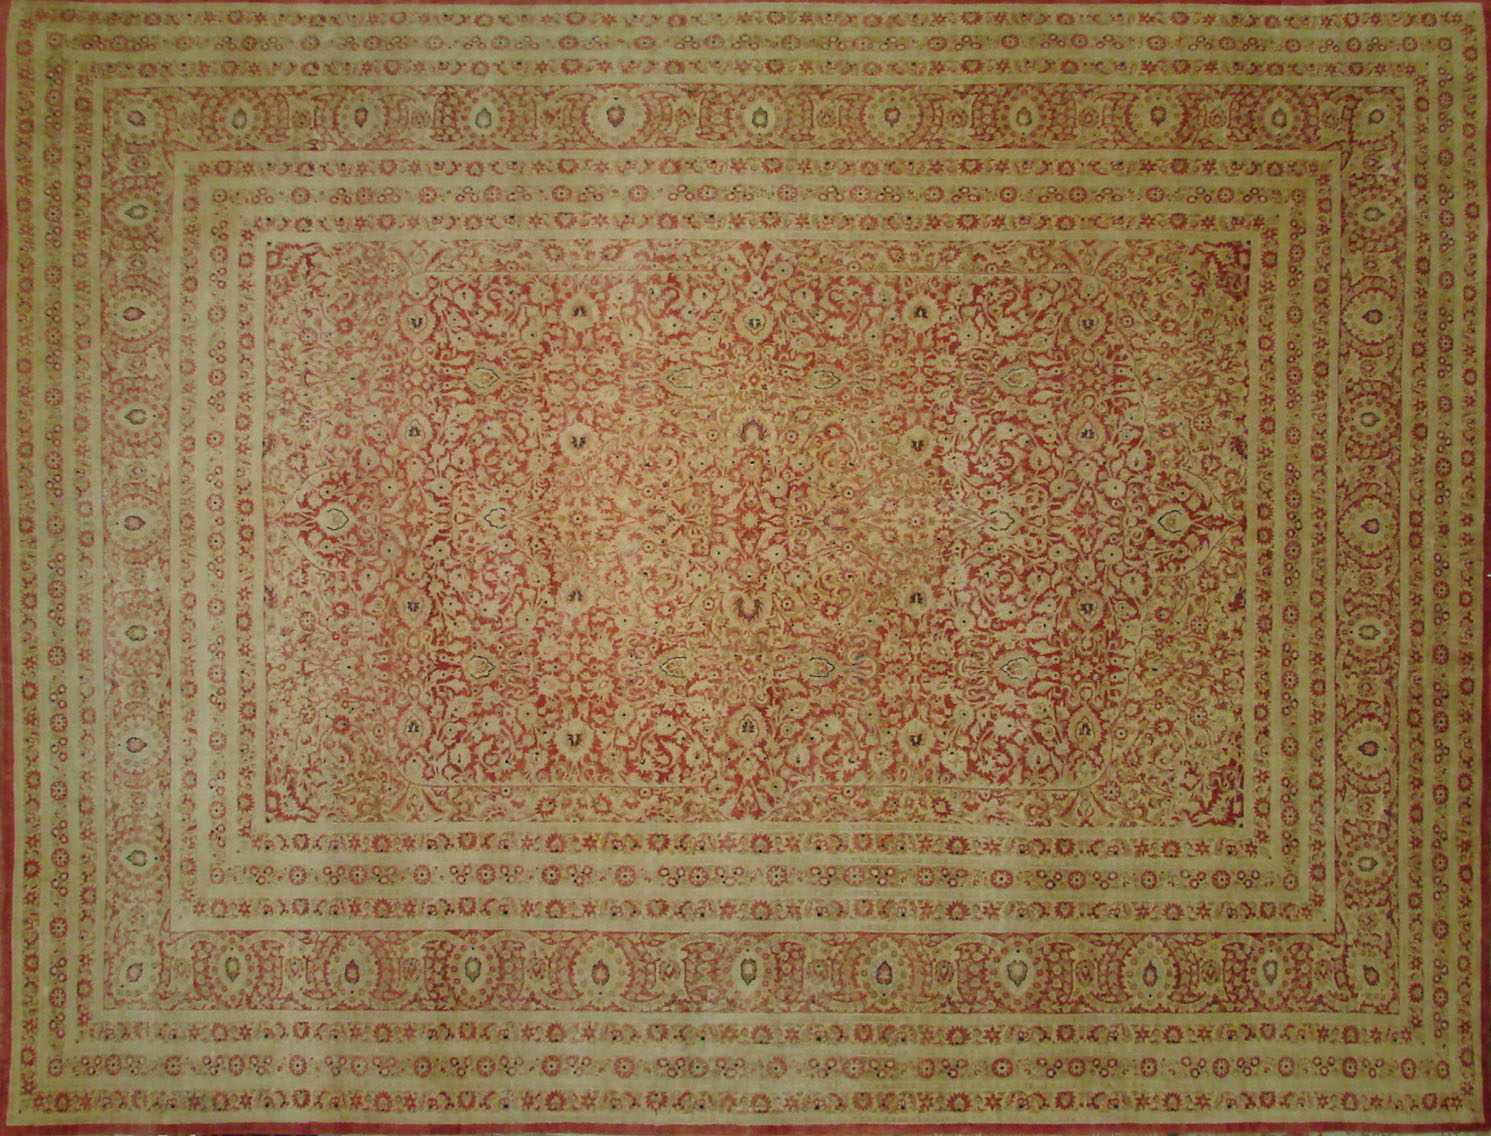 9x12 Antique Revival Hand Knotted Wool Area Rug - MR021648